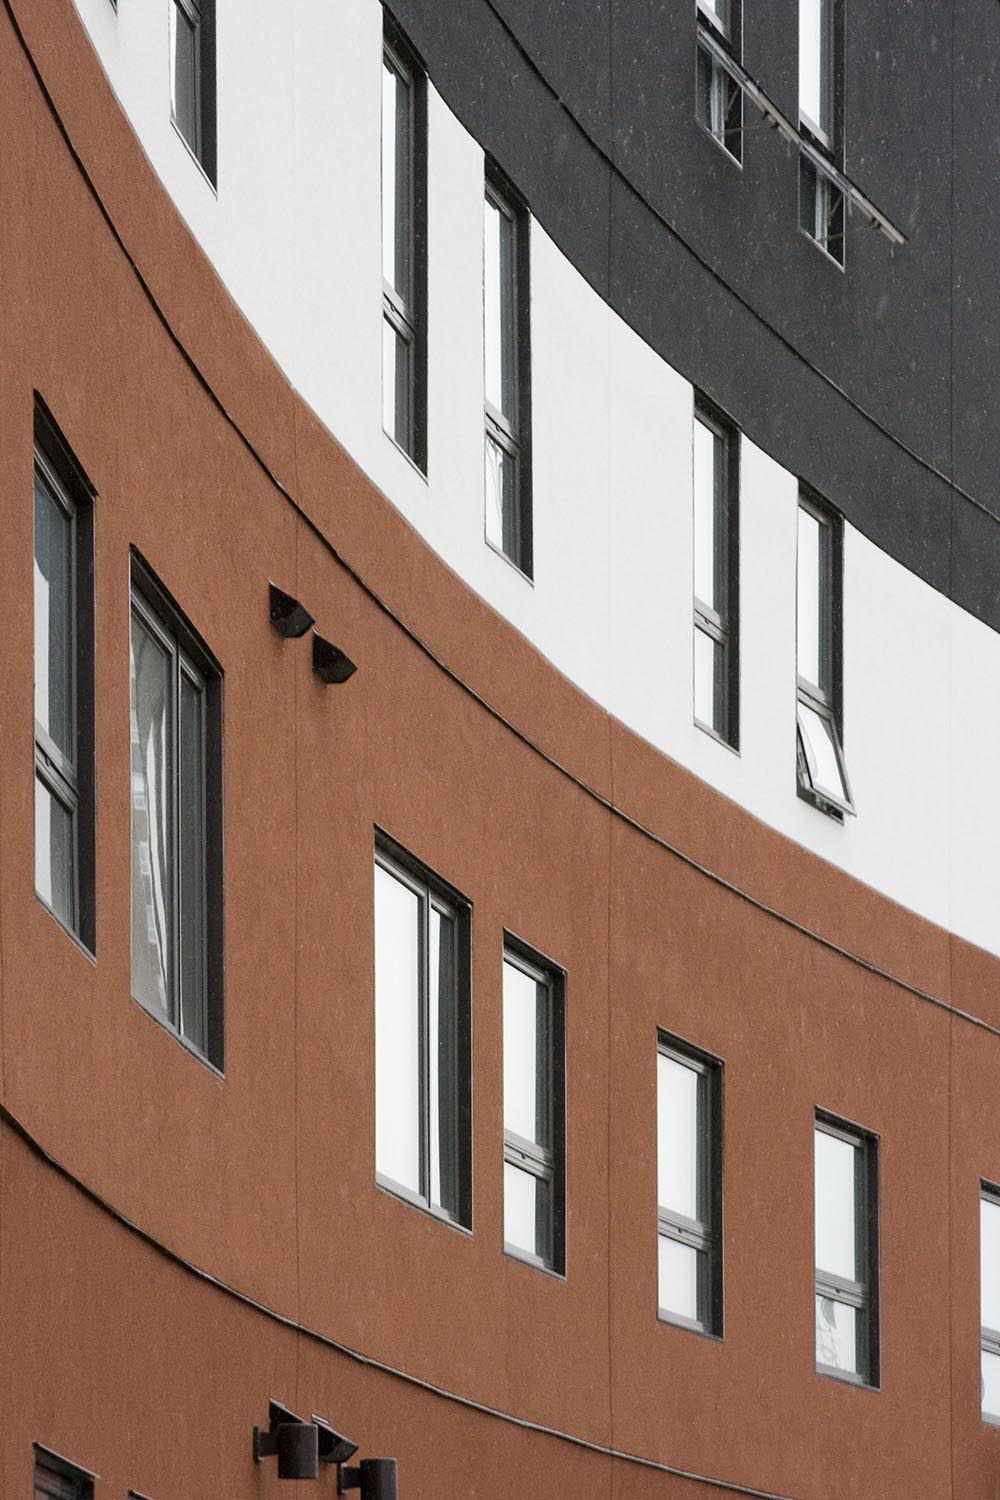 U of W Housing (McFeetor's Hall), exterior photo of building detail / Photo: Tracy A Wieler